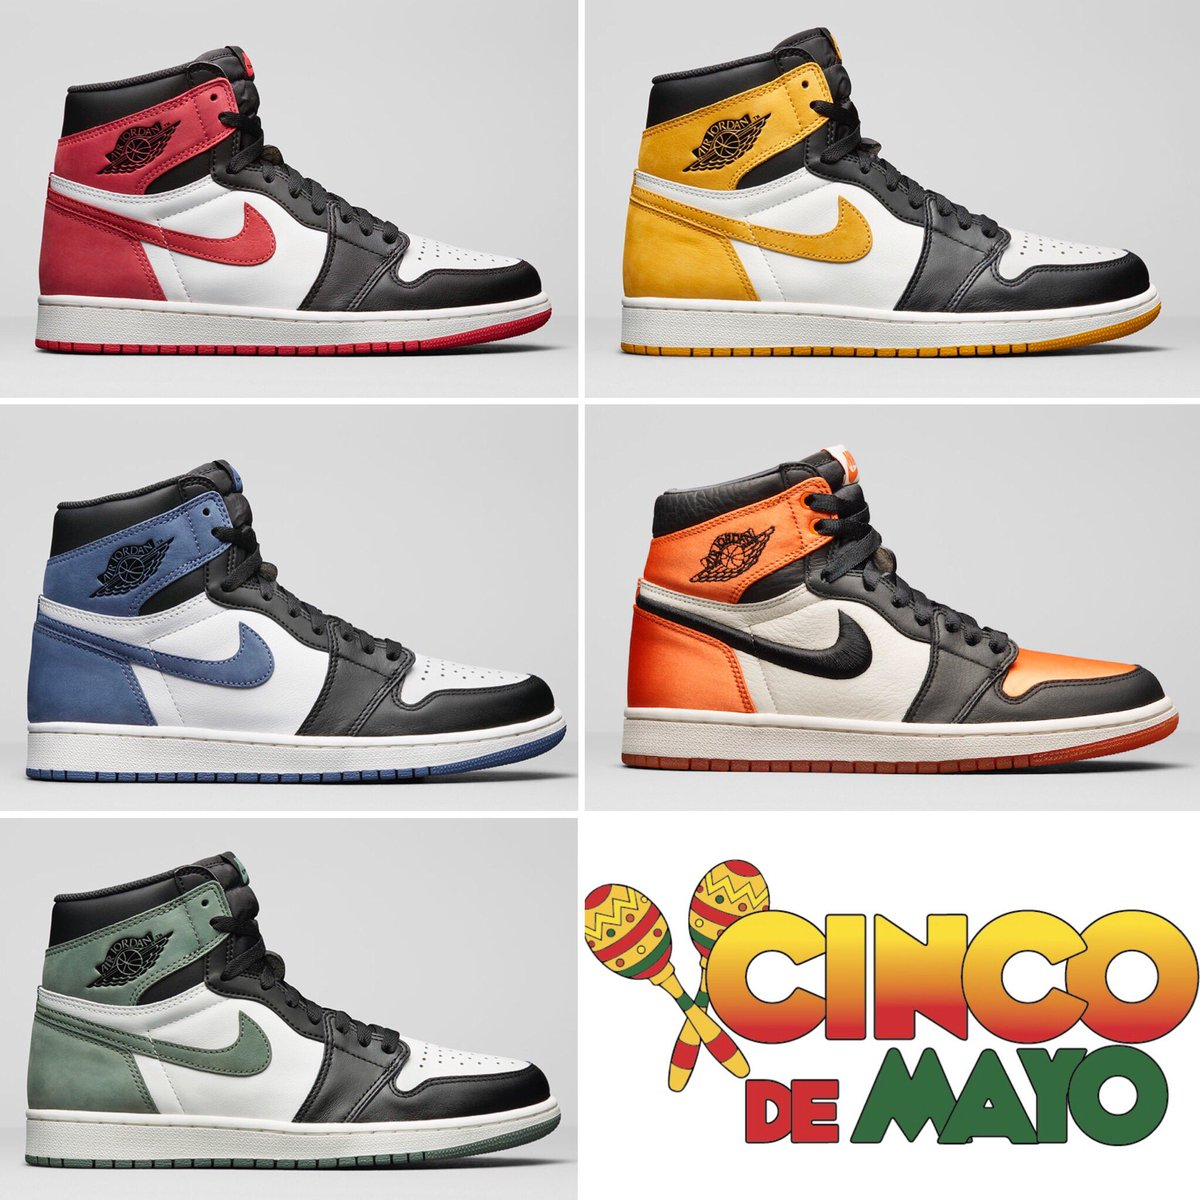 Grab your Maracas and Go Get Yourself a pair of Cinco de Mayo Air Jordans!